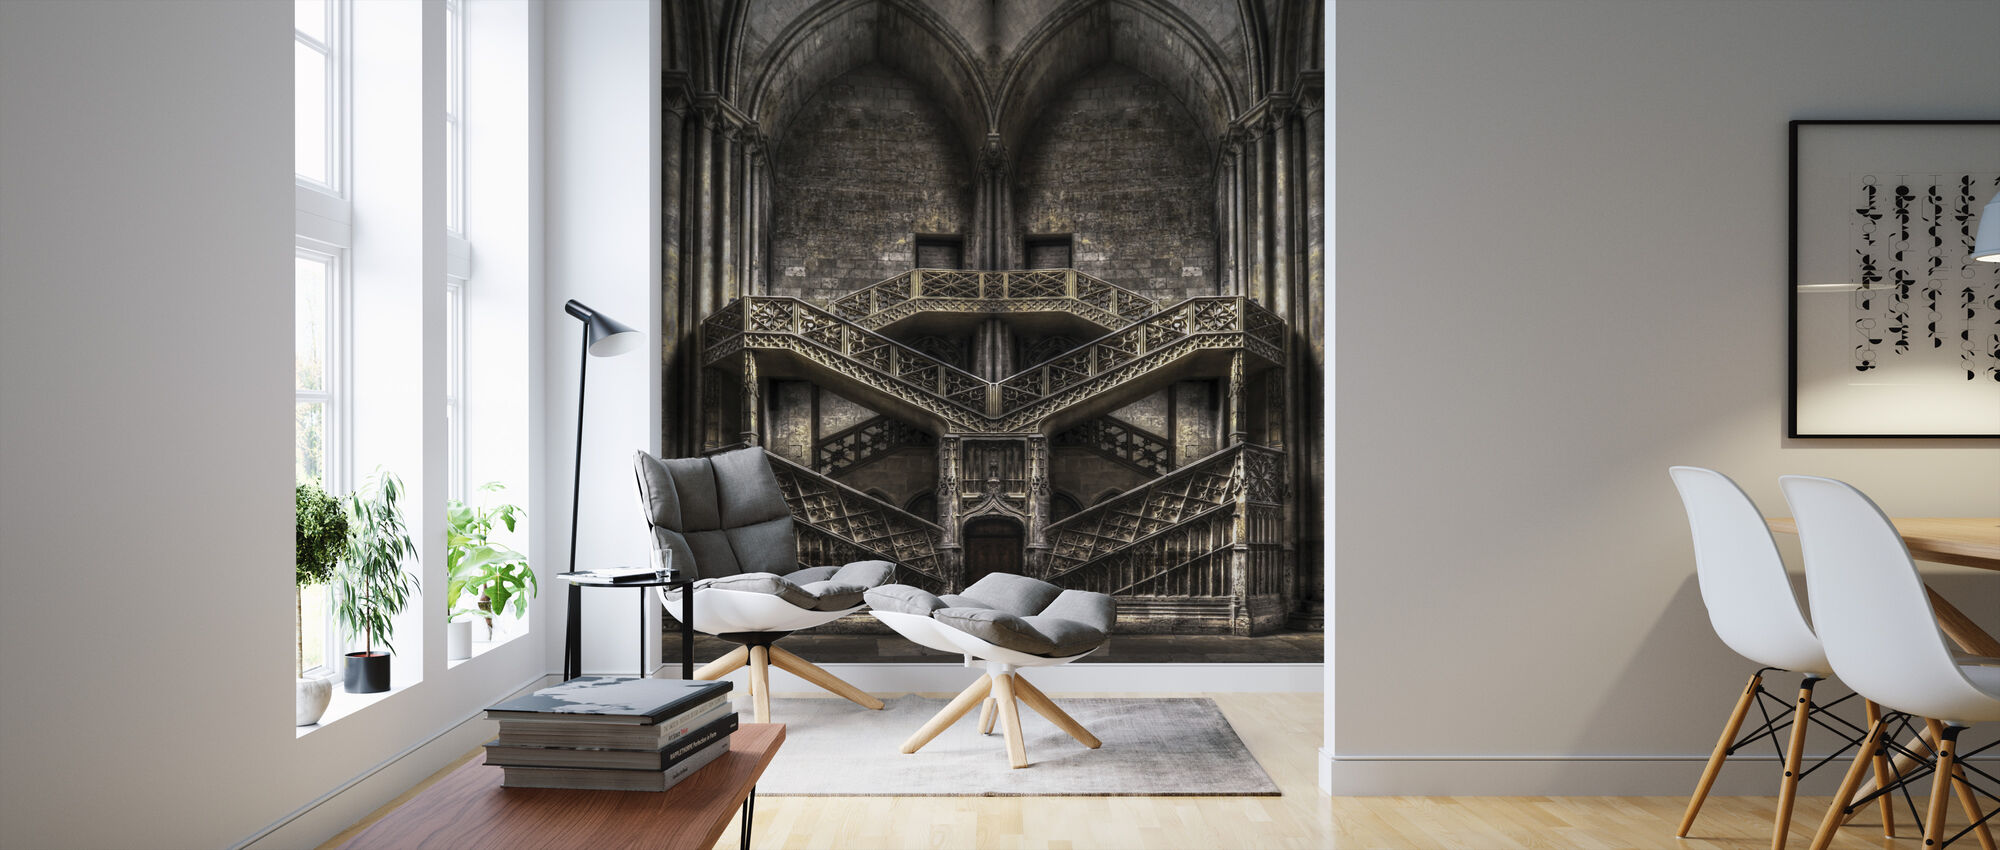 Castle Architecture - Wallpaper - Living Room